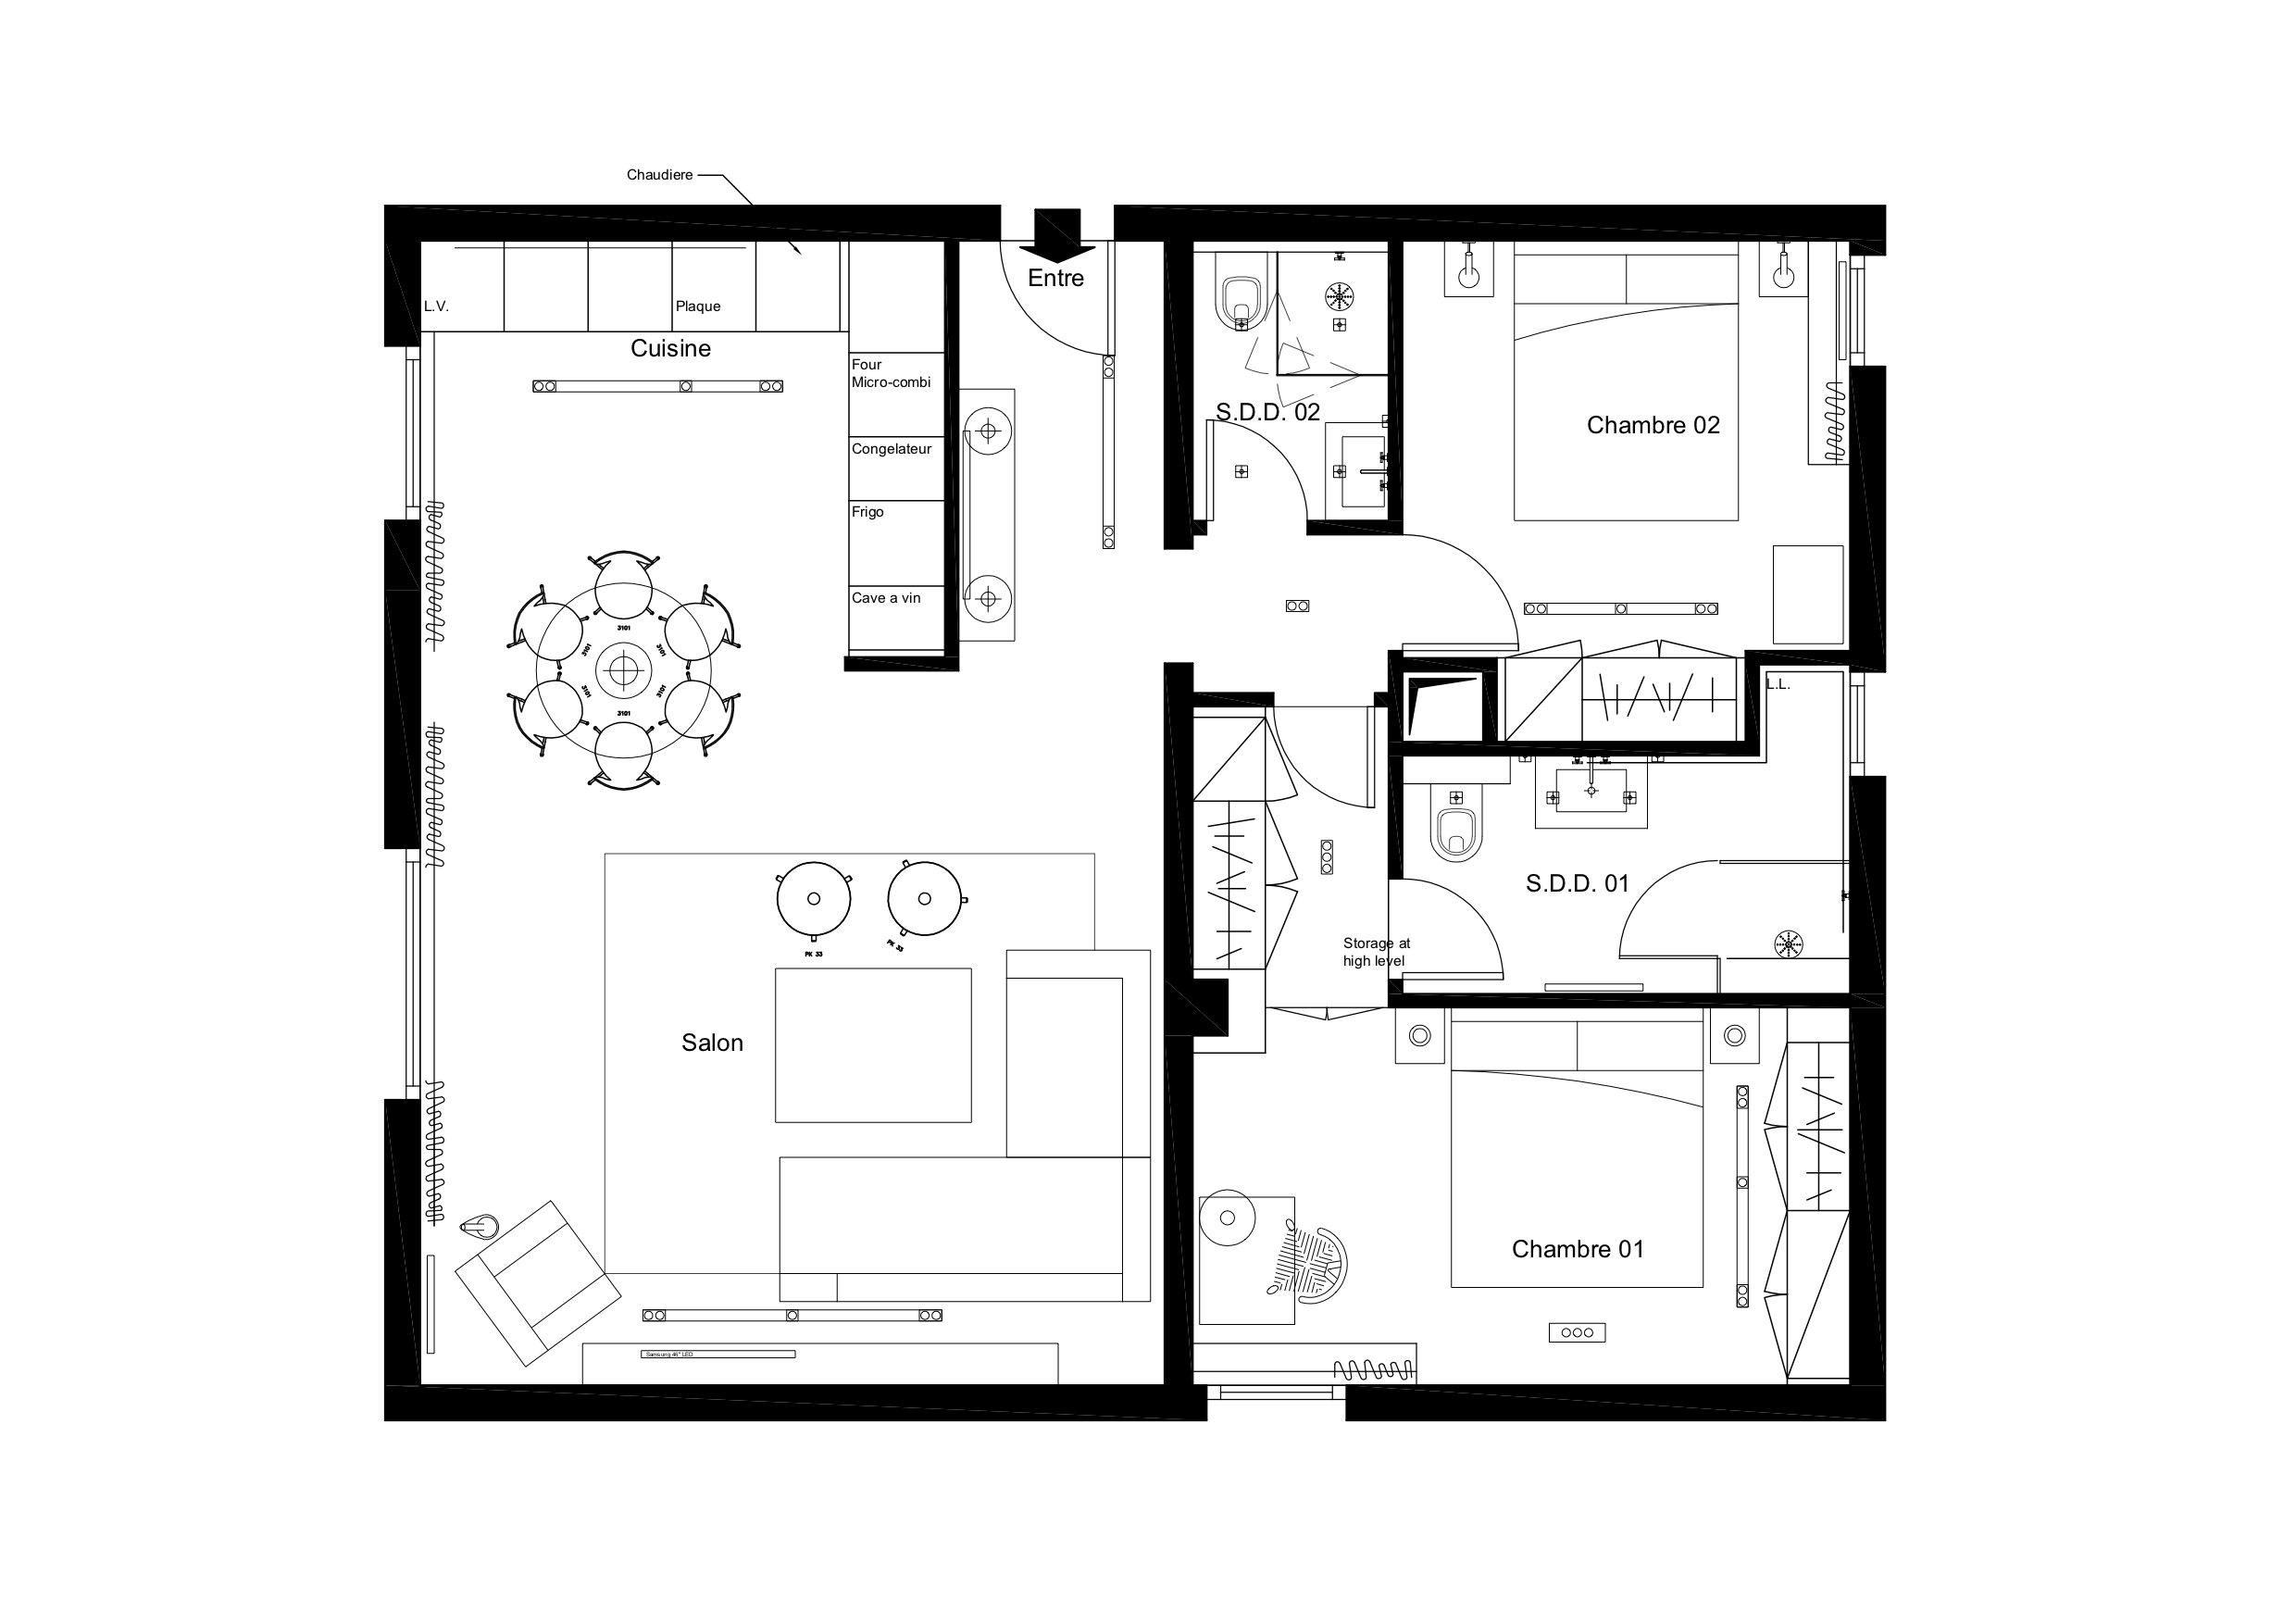 Renovation Cuisine Cannes pin on cad plans